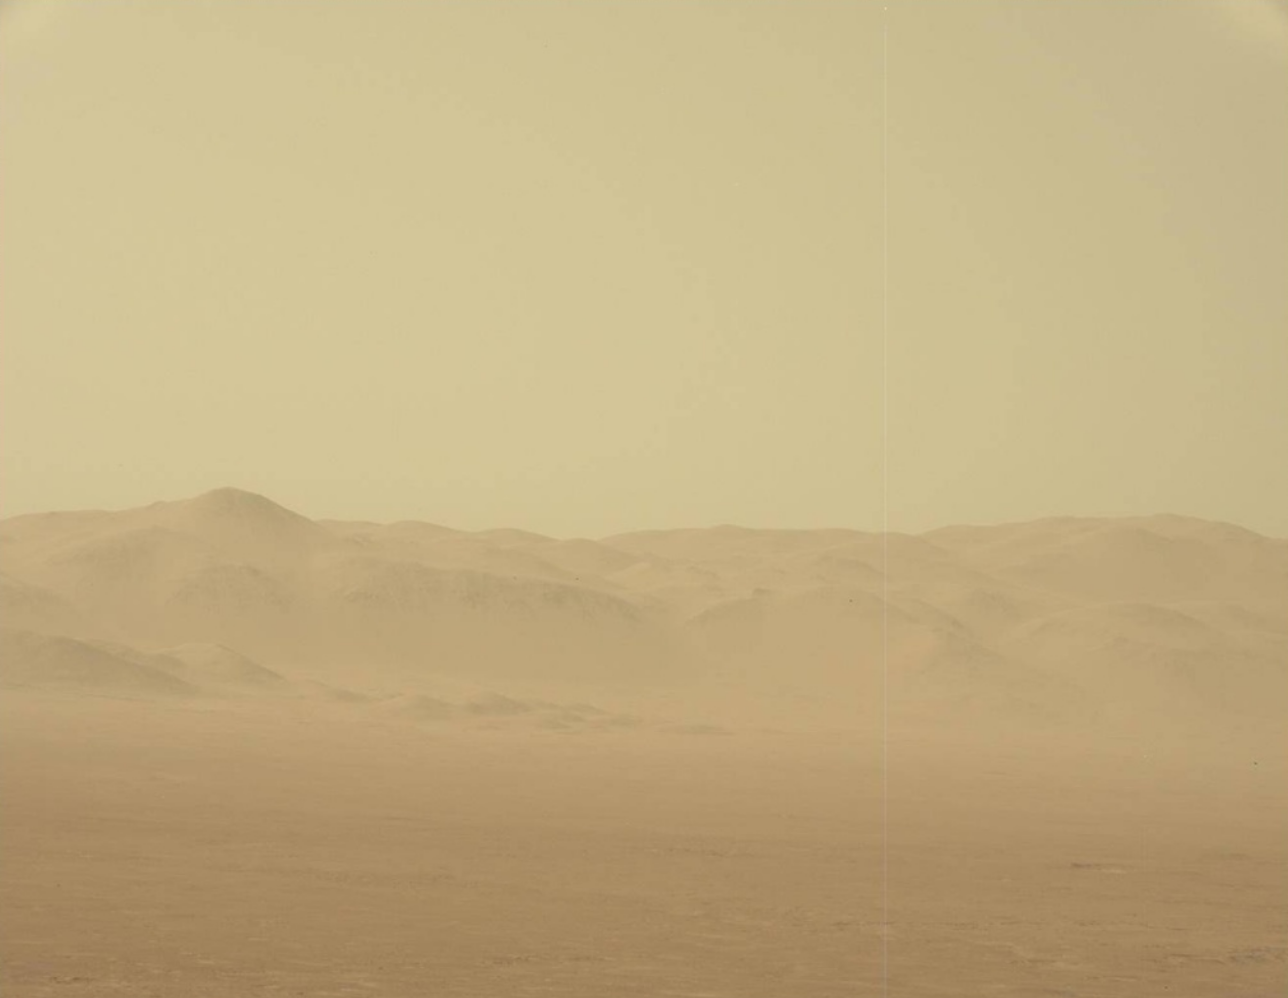 A picture of the Martian dust storm captured with Curiosity's Mastcam.